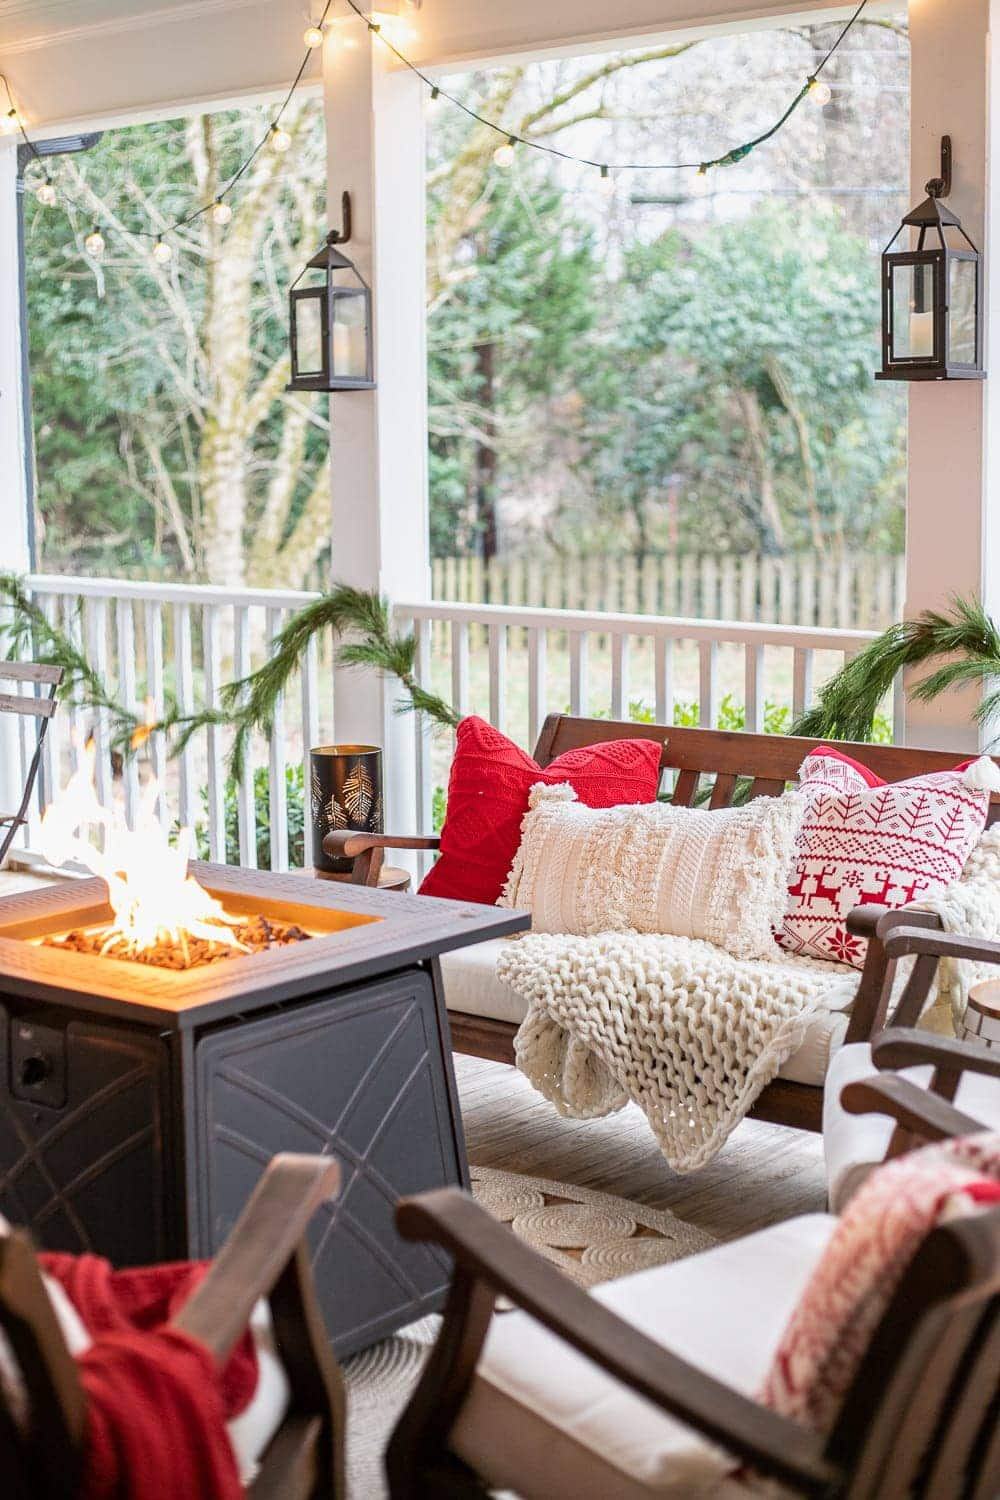 Cozy Christmas back porch with fire pit table, lanterns, and string lights